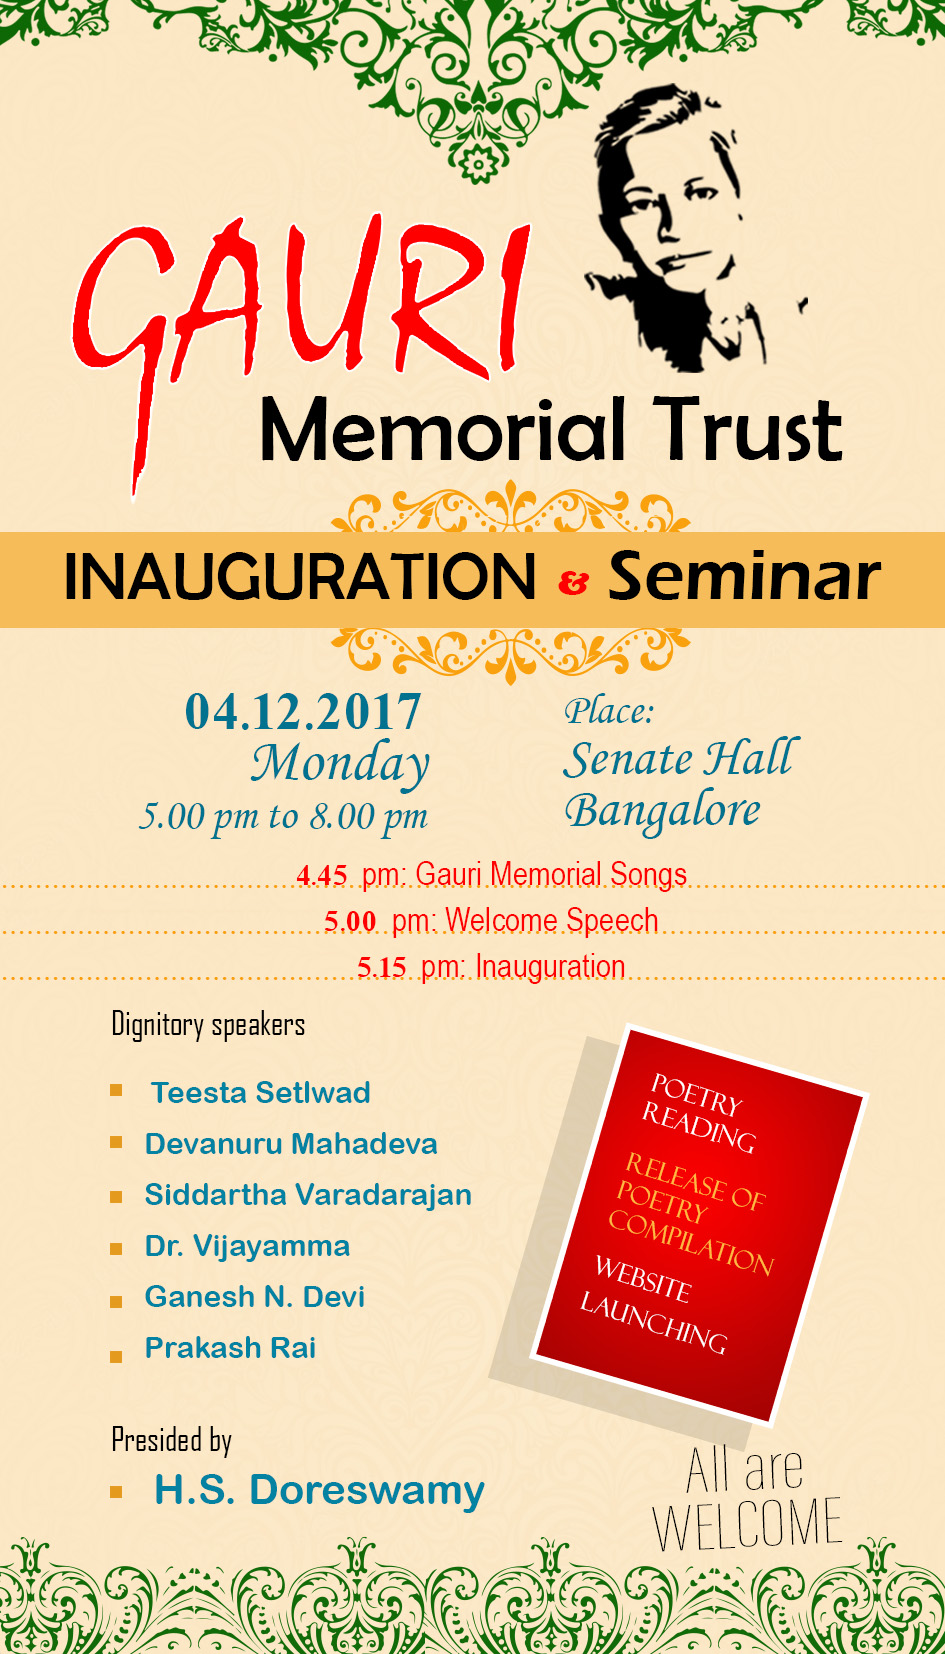 Inauguration of Gauri Memorial Trust